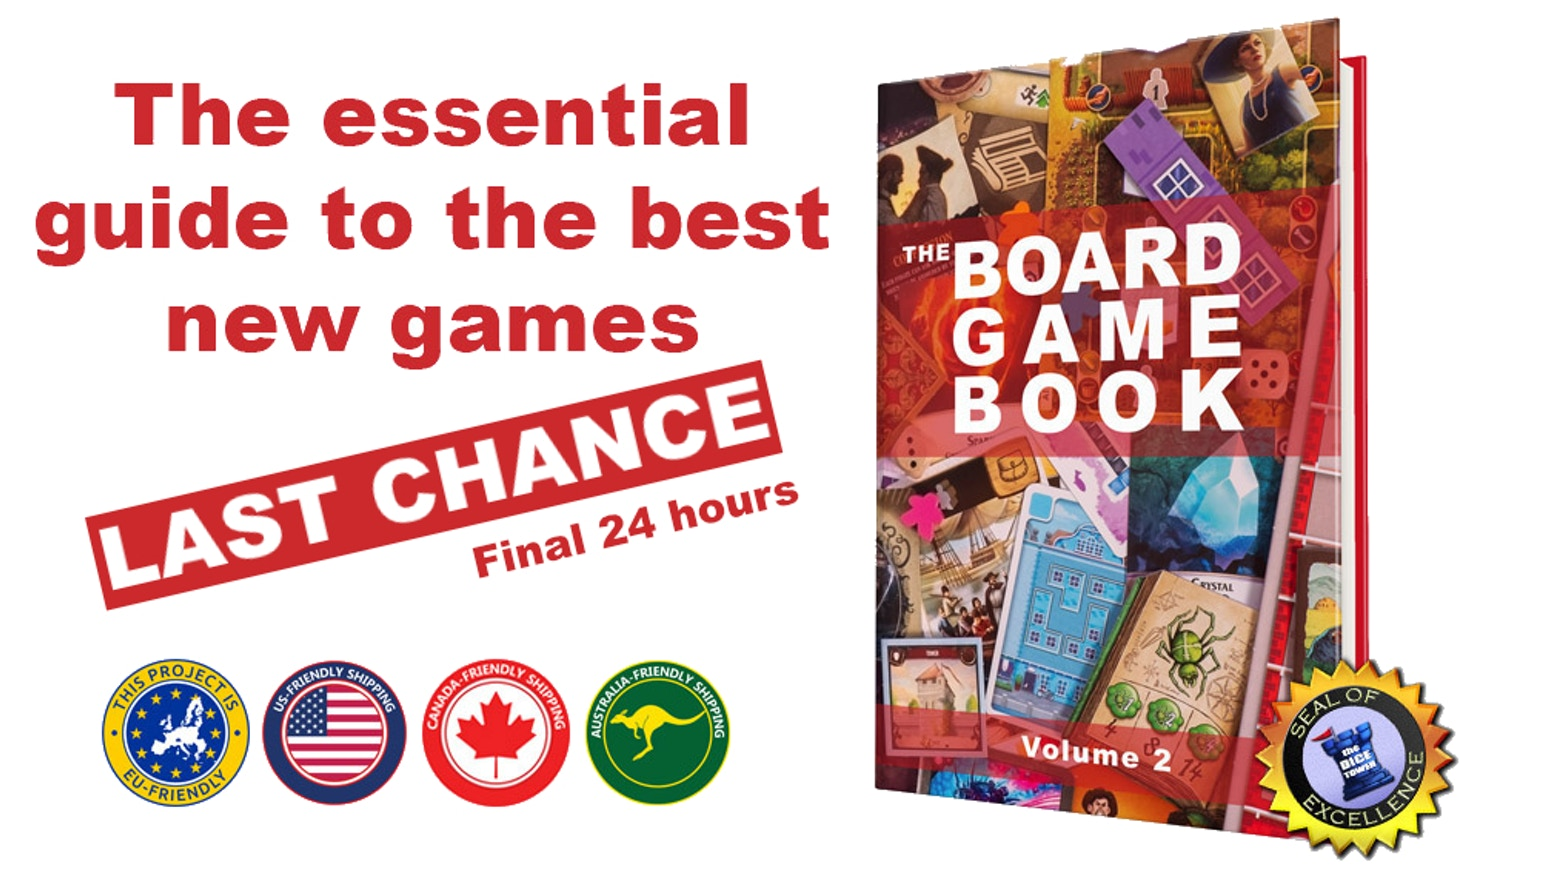 The second edition of the bestselling tabletop gaming guide!